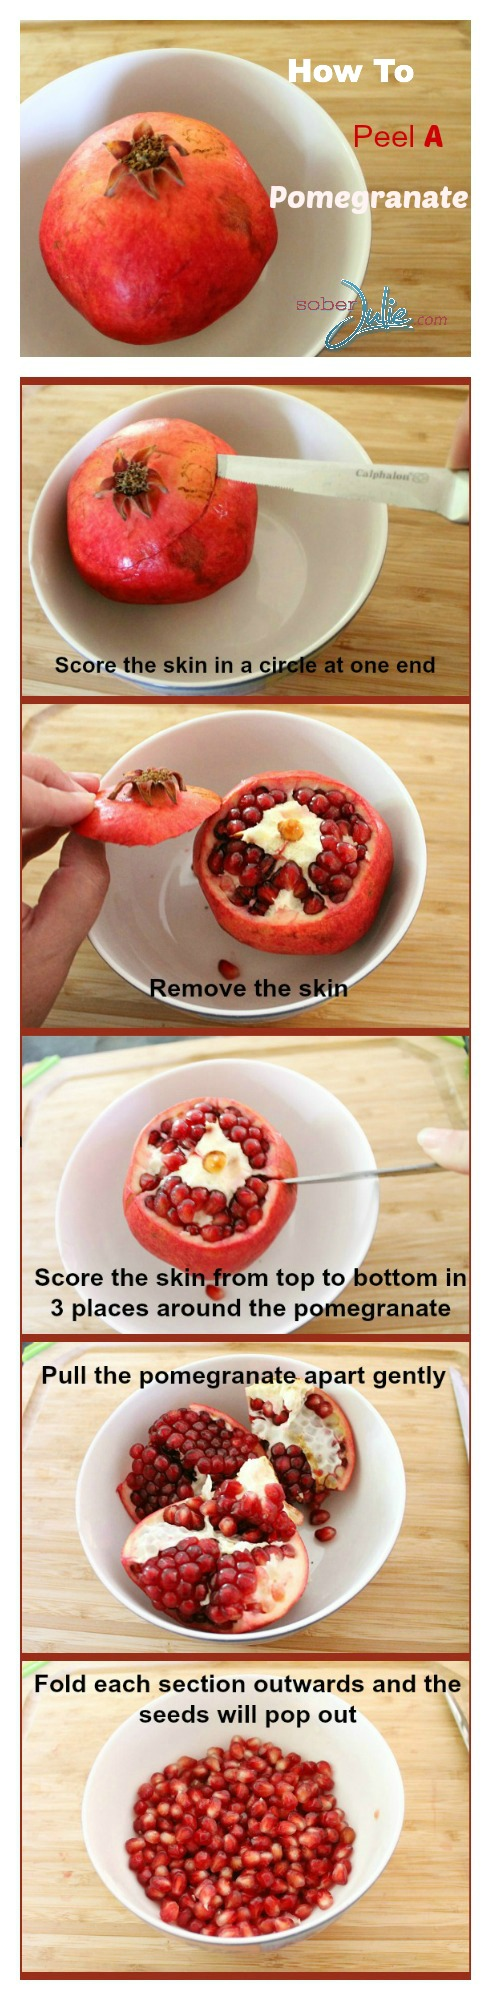 what is a pomegranate & how to peel